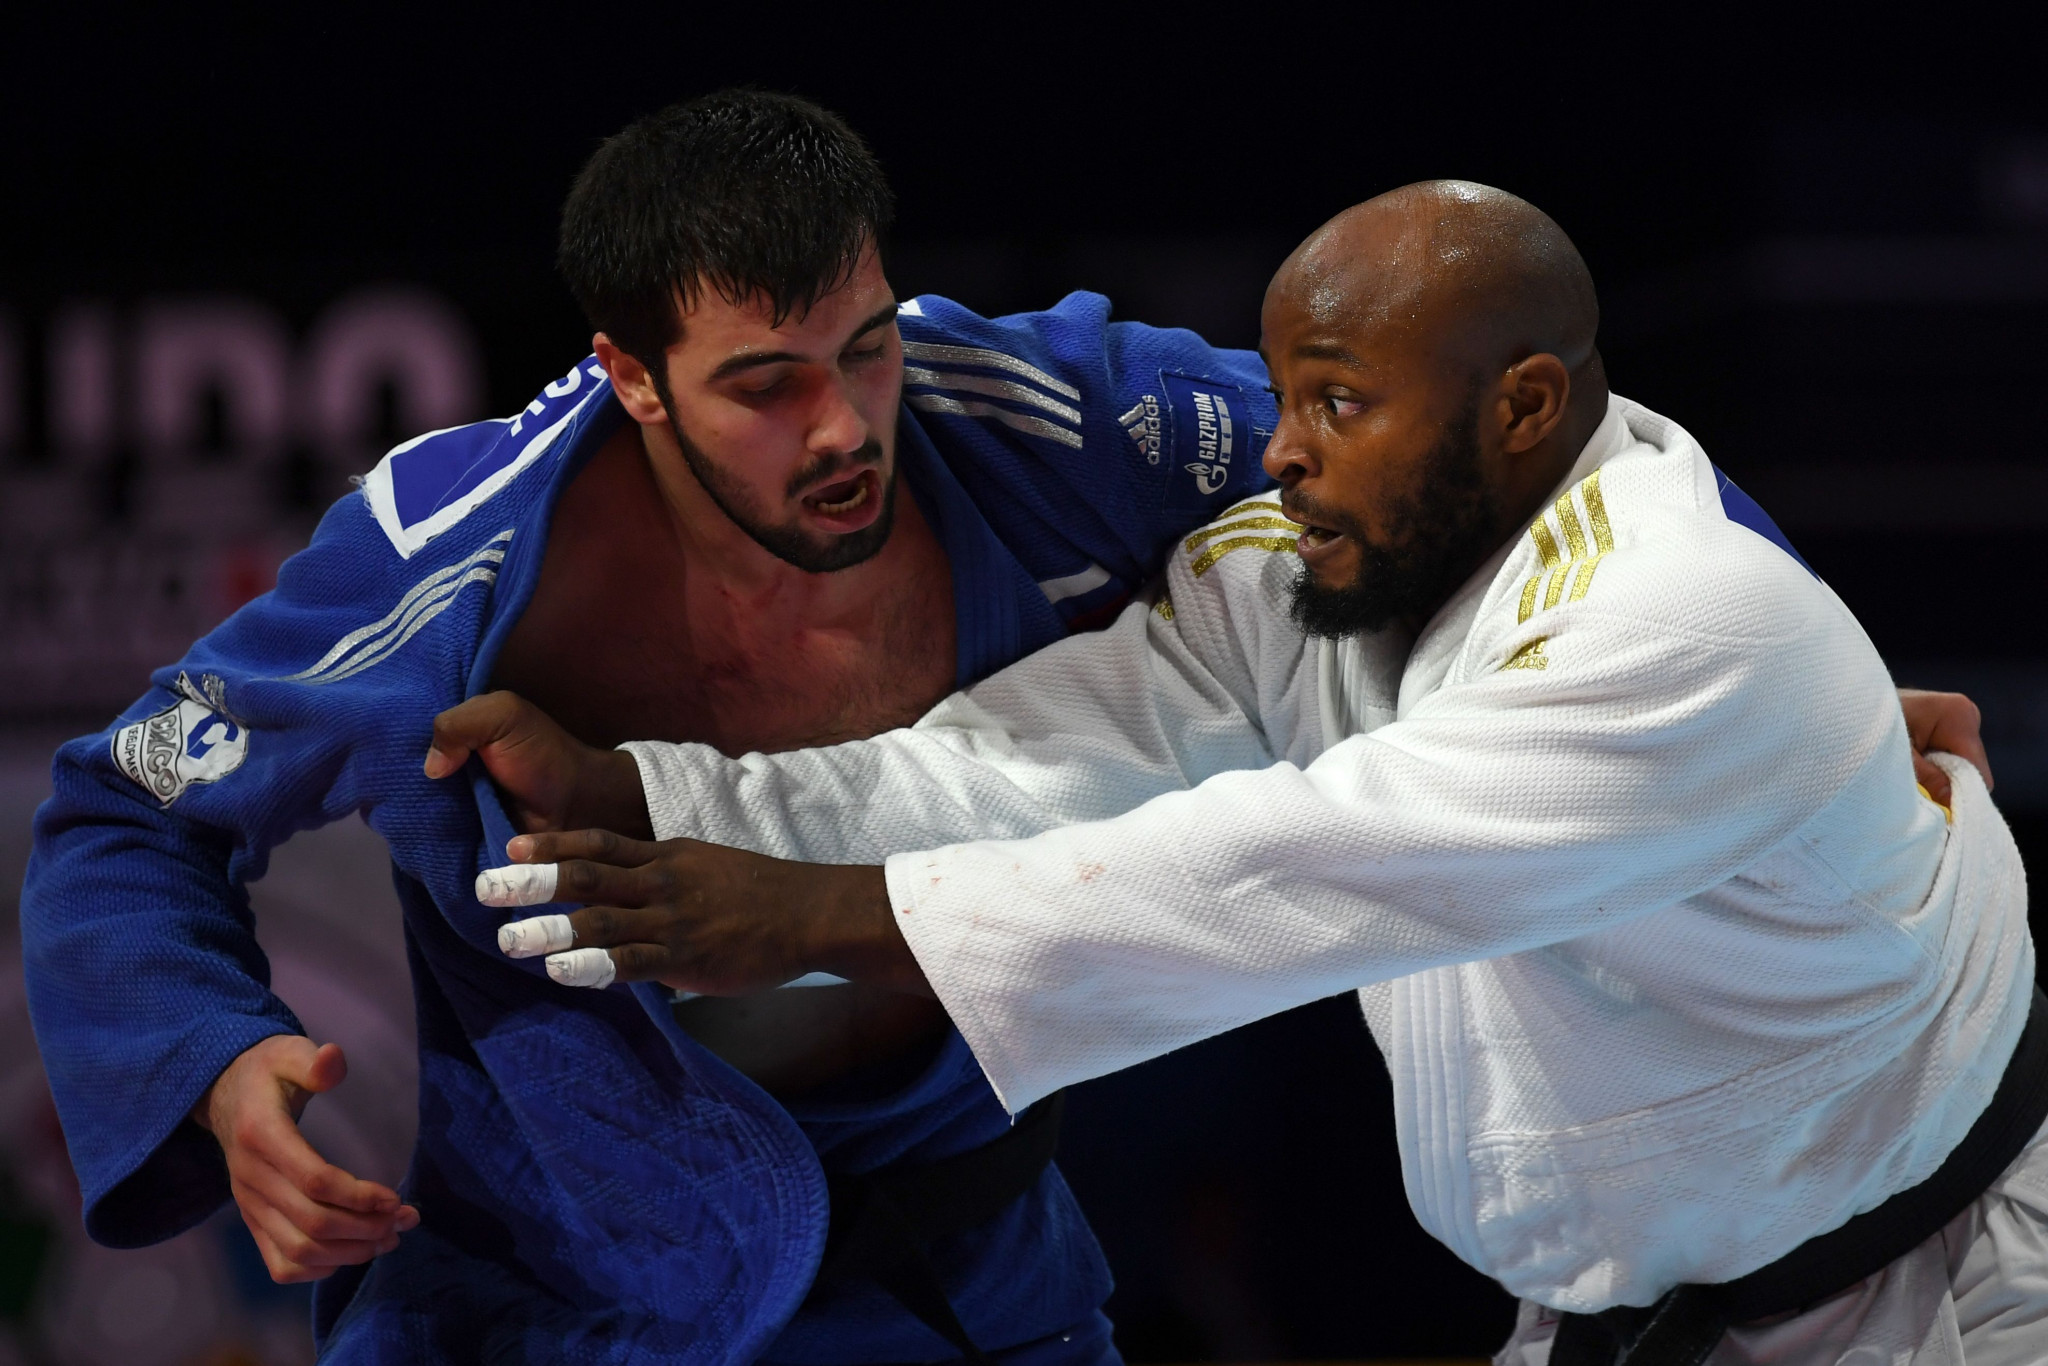 Jorge Fonseca, in white, won the under-100 kilogram category with some thrilling judo ©Getty Images